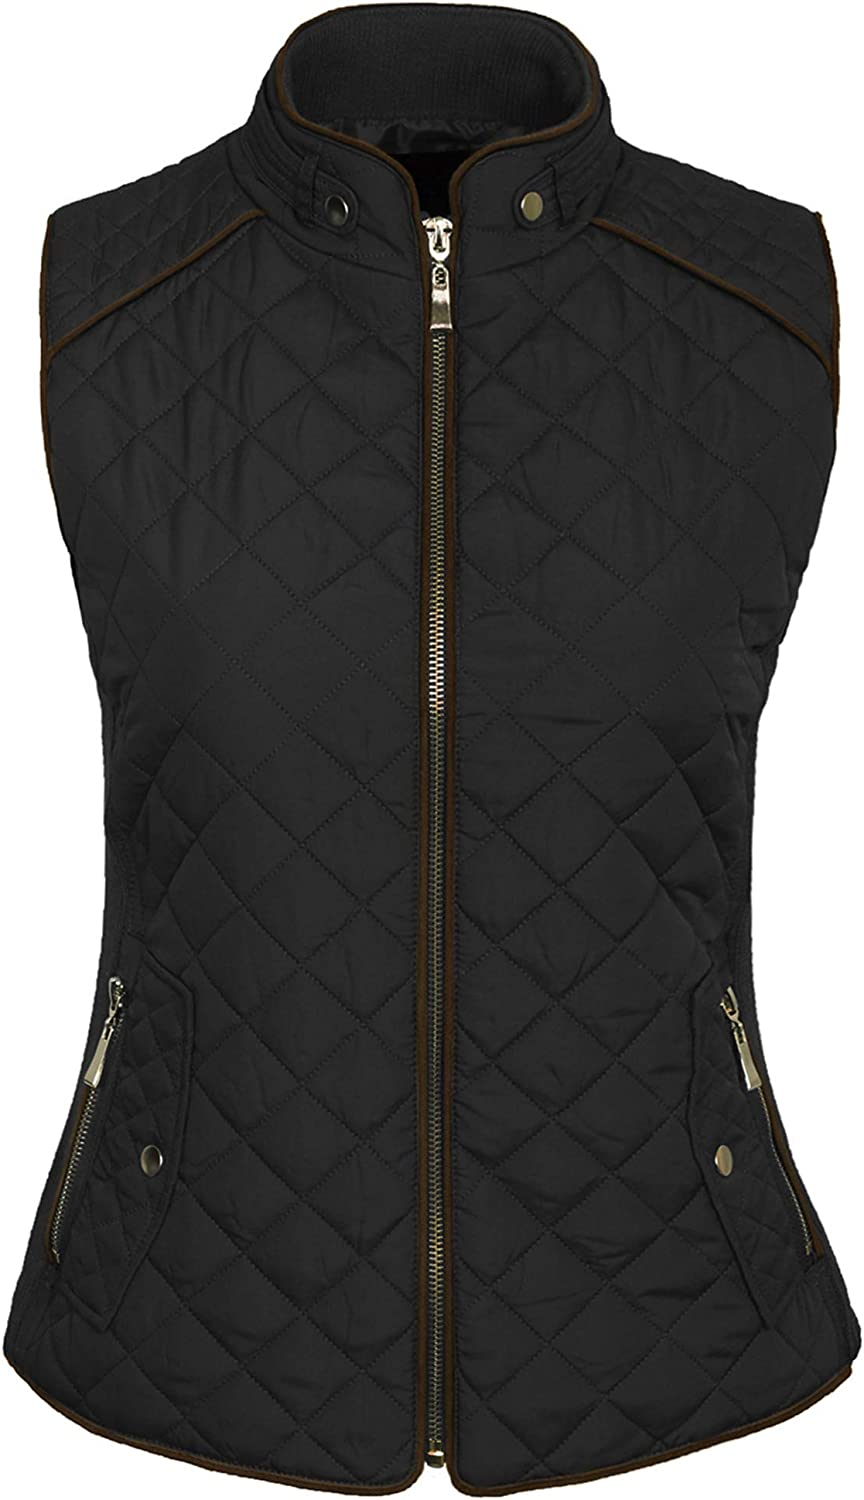 KOGMO Womens Quilted Fully Lined Lightweight Zip Up Vest S-3X